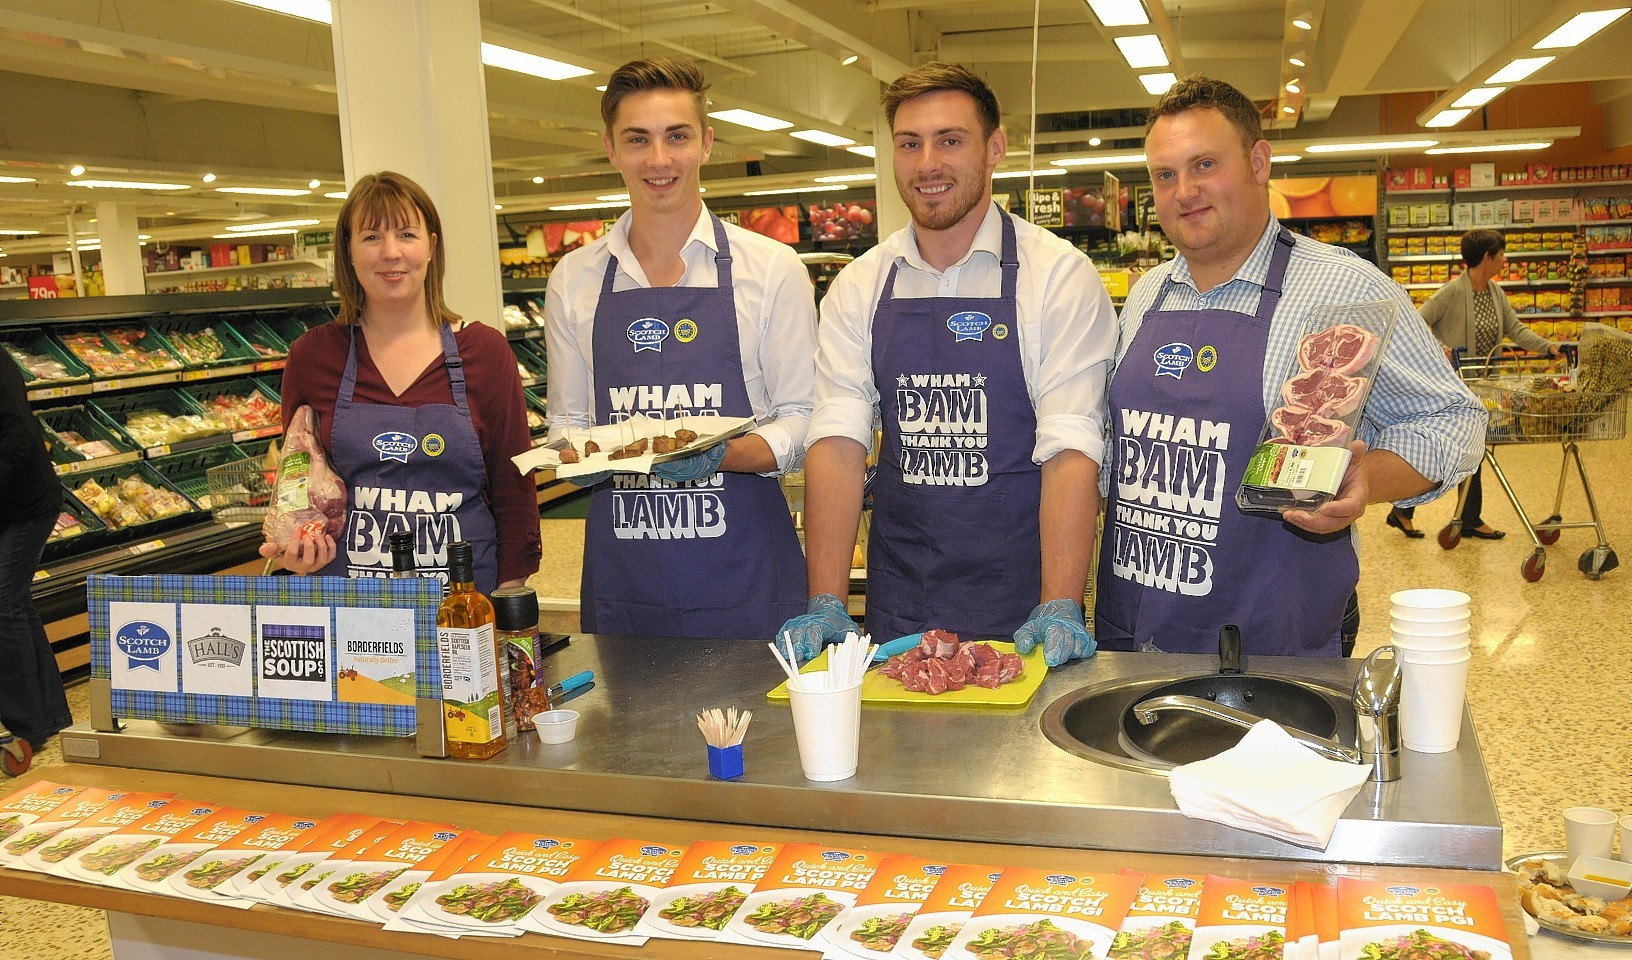 Ross (right) and Kirsty Williams join the QMS Scotch Lamb sampling team